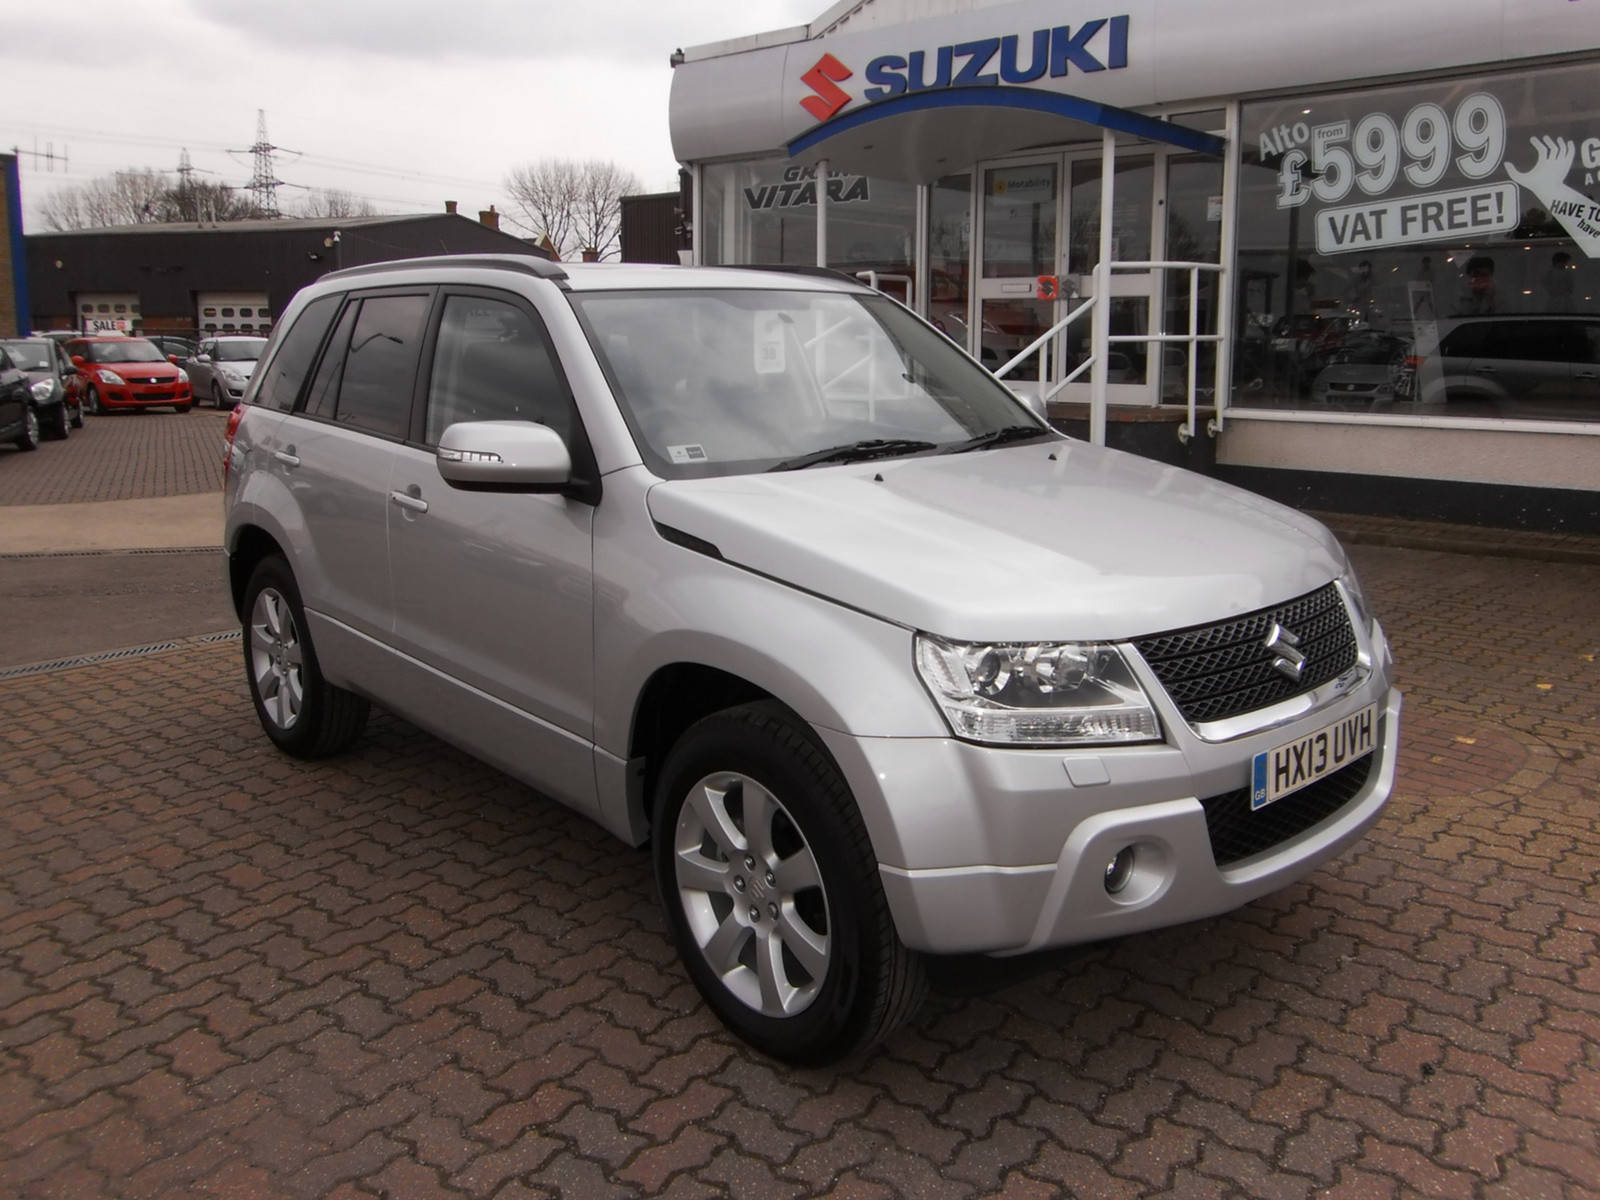 Suzuki Grand Vitara 2.4 SZ5 Estate Petrol Silver